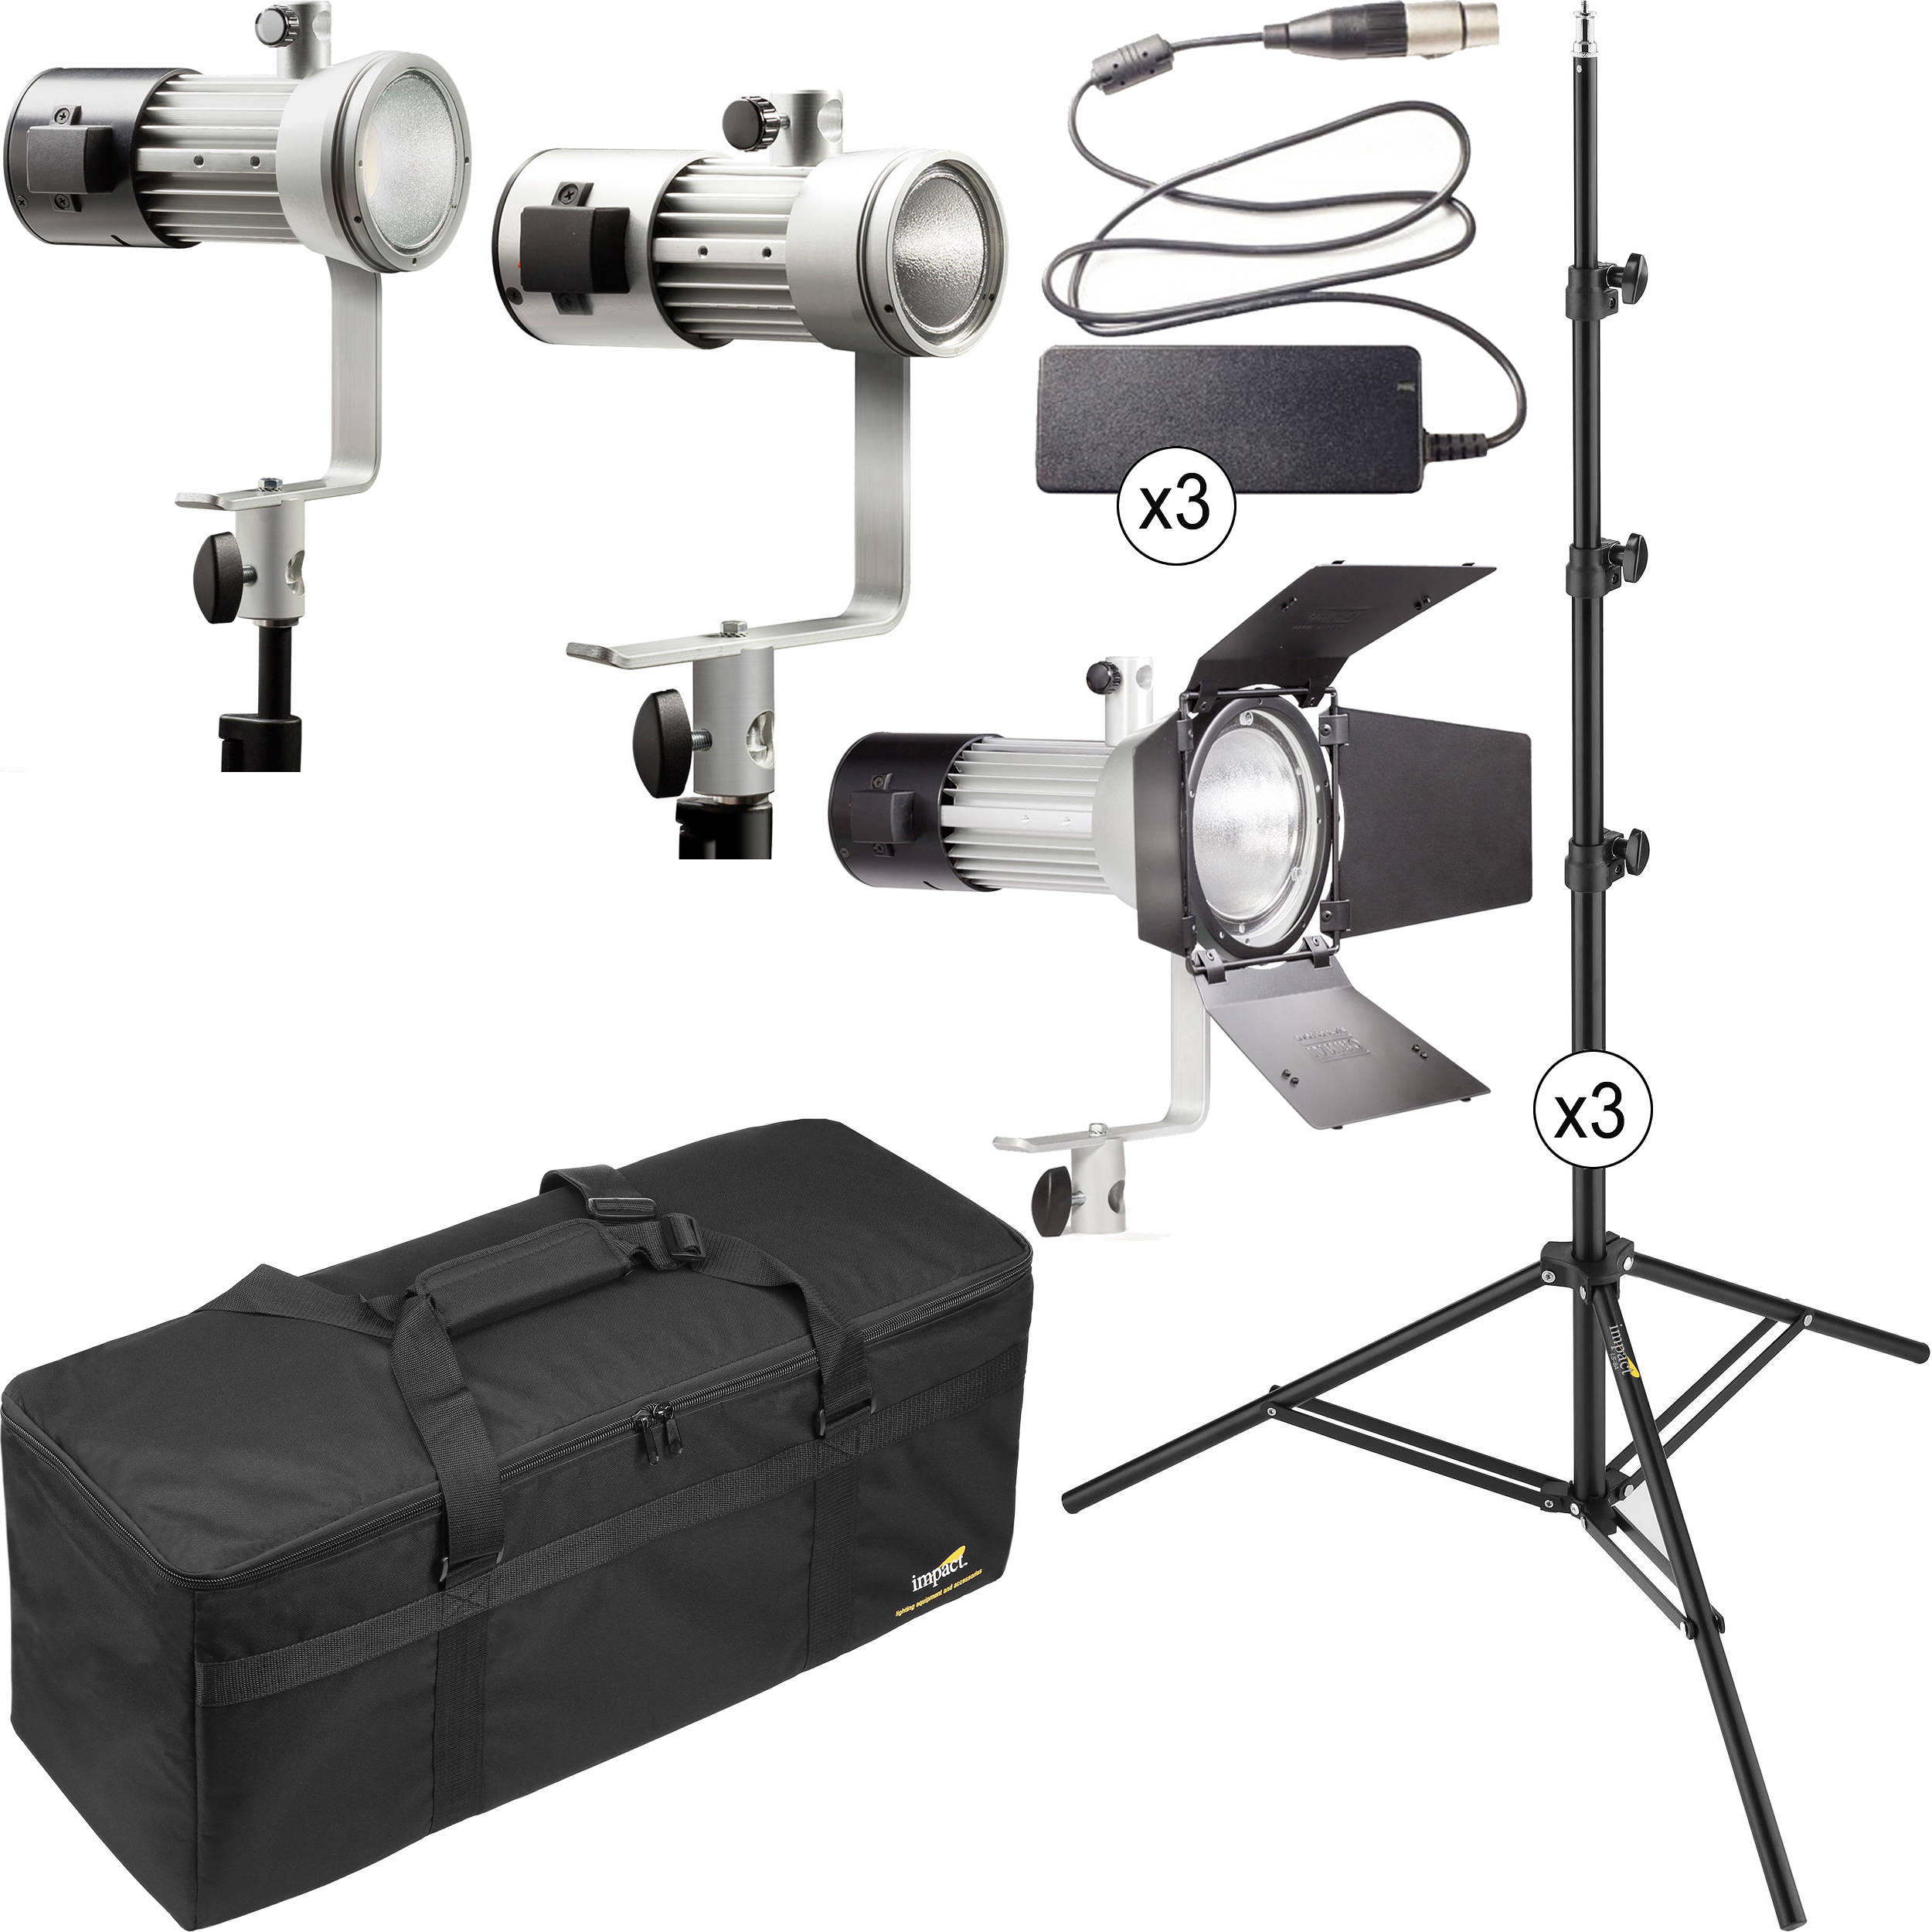 Ianiro Mintaka Mini Medium And Maxi Daylight Led 3 Light Kit